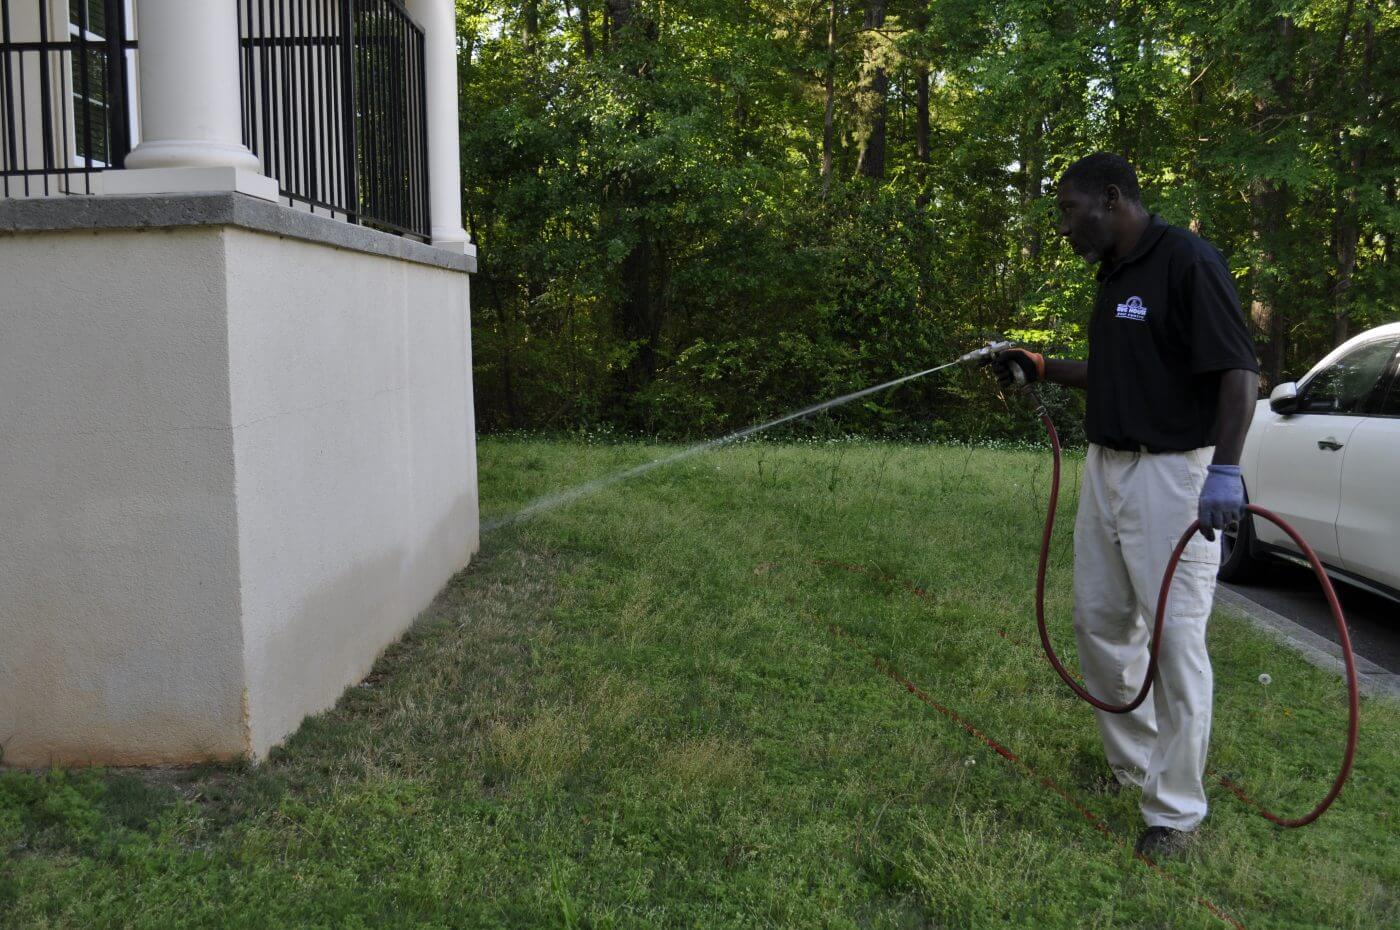 Bug House Milledgeville employee working on pest control outside